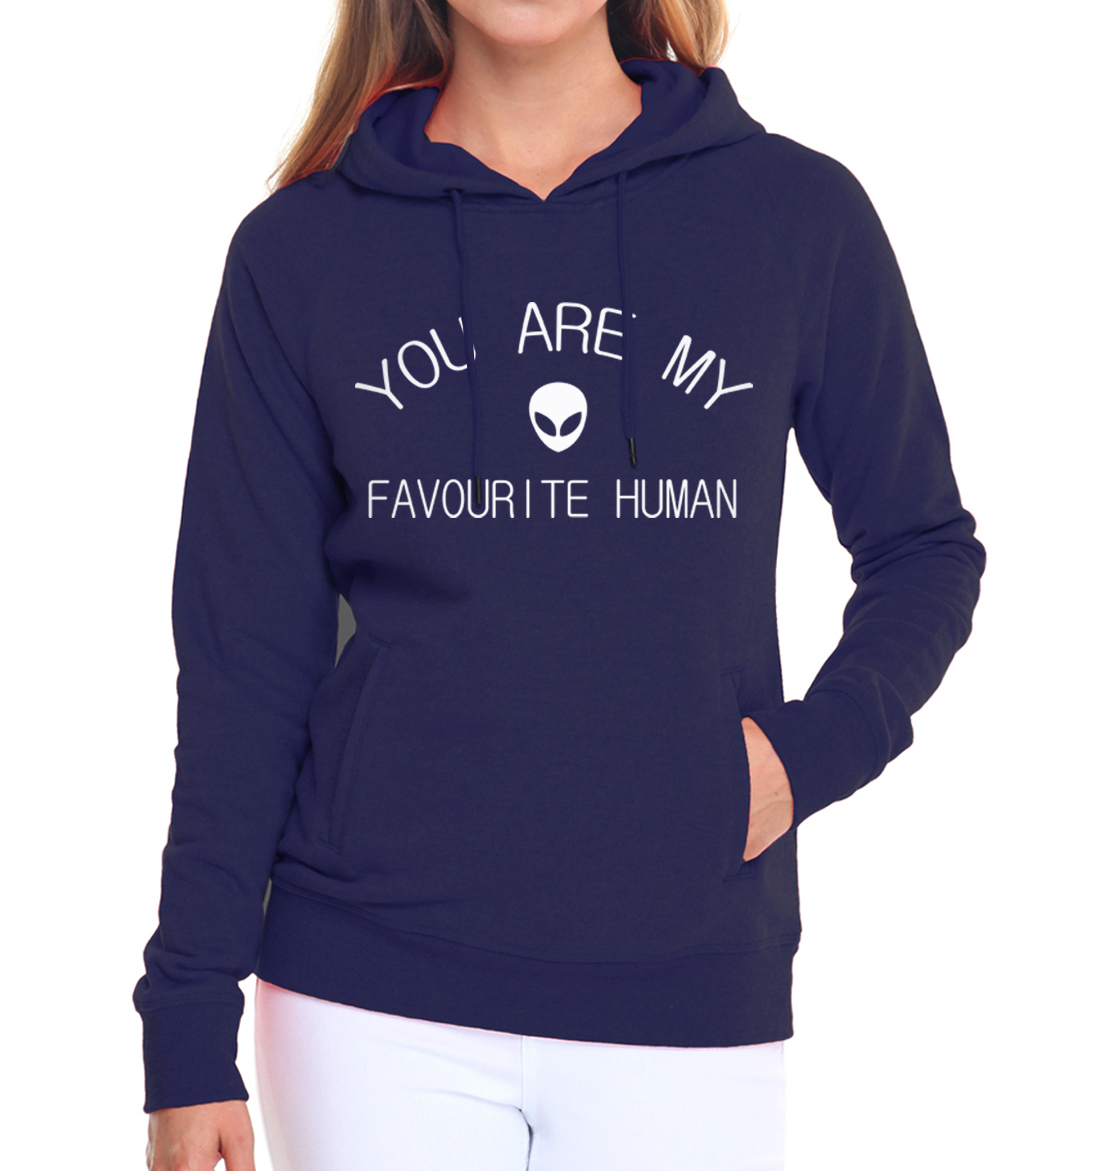 funny slogan Womens Sweatshirts YOU ARE MY FAVOURITE HUMAN casual pullovers 2017 fleece hoodies kpop hoody top pink tracksuits